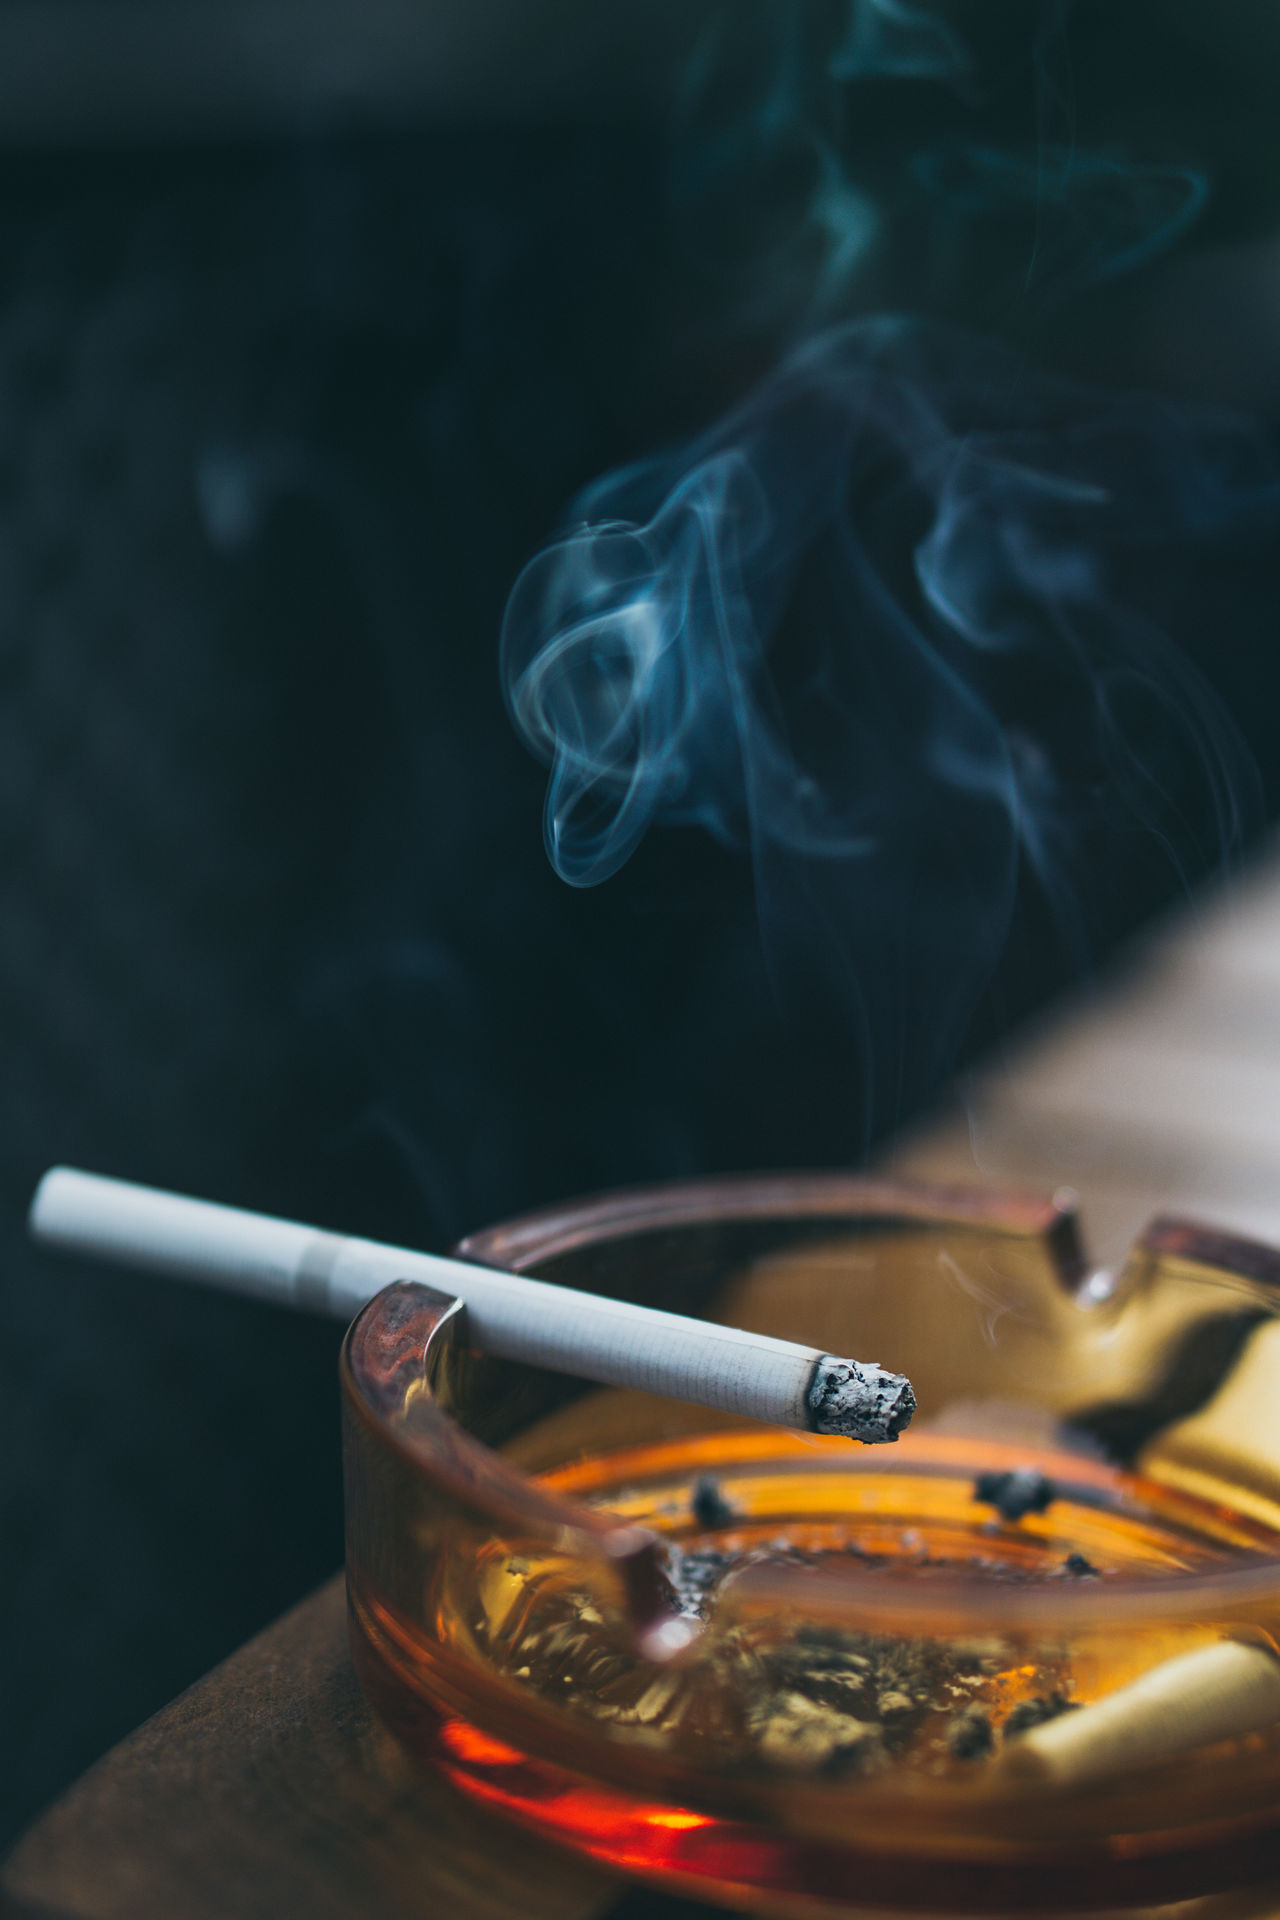 Smoke - Physical Structure Smoking - Activity Smoking Issues Cigarette  Addiction Bad Habit Social Issues Danger No People Ashtray  Condensation Indoors  Close-up Smoke Smoking Ashtray  Colors Colours